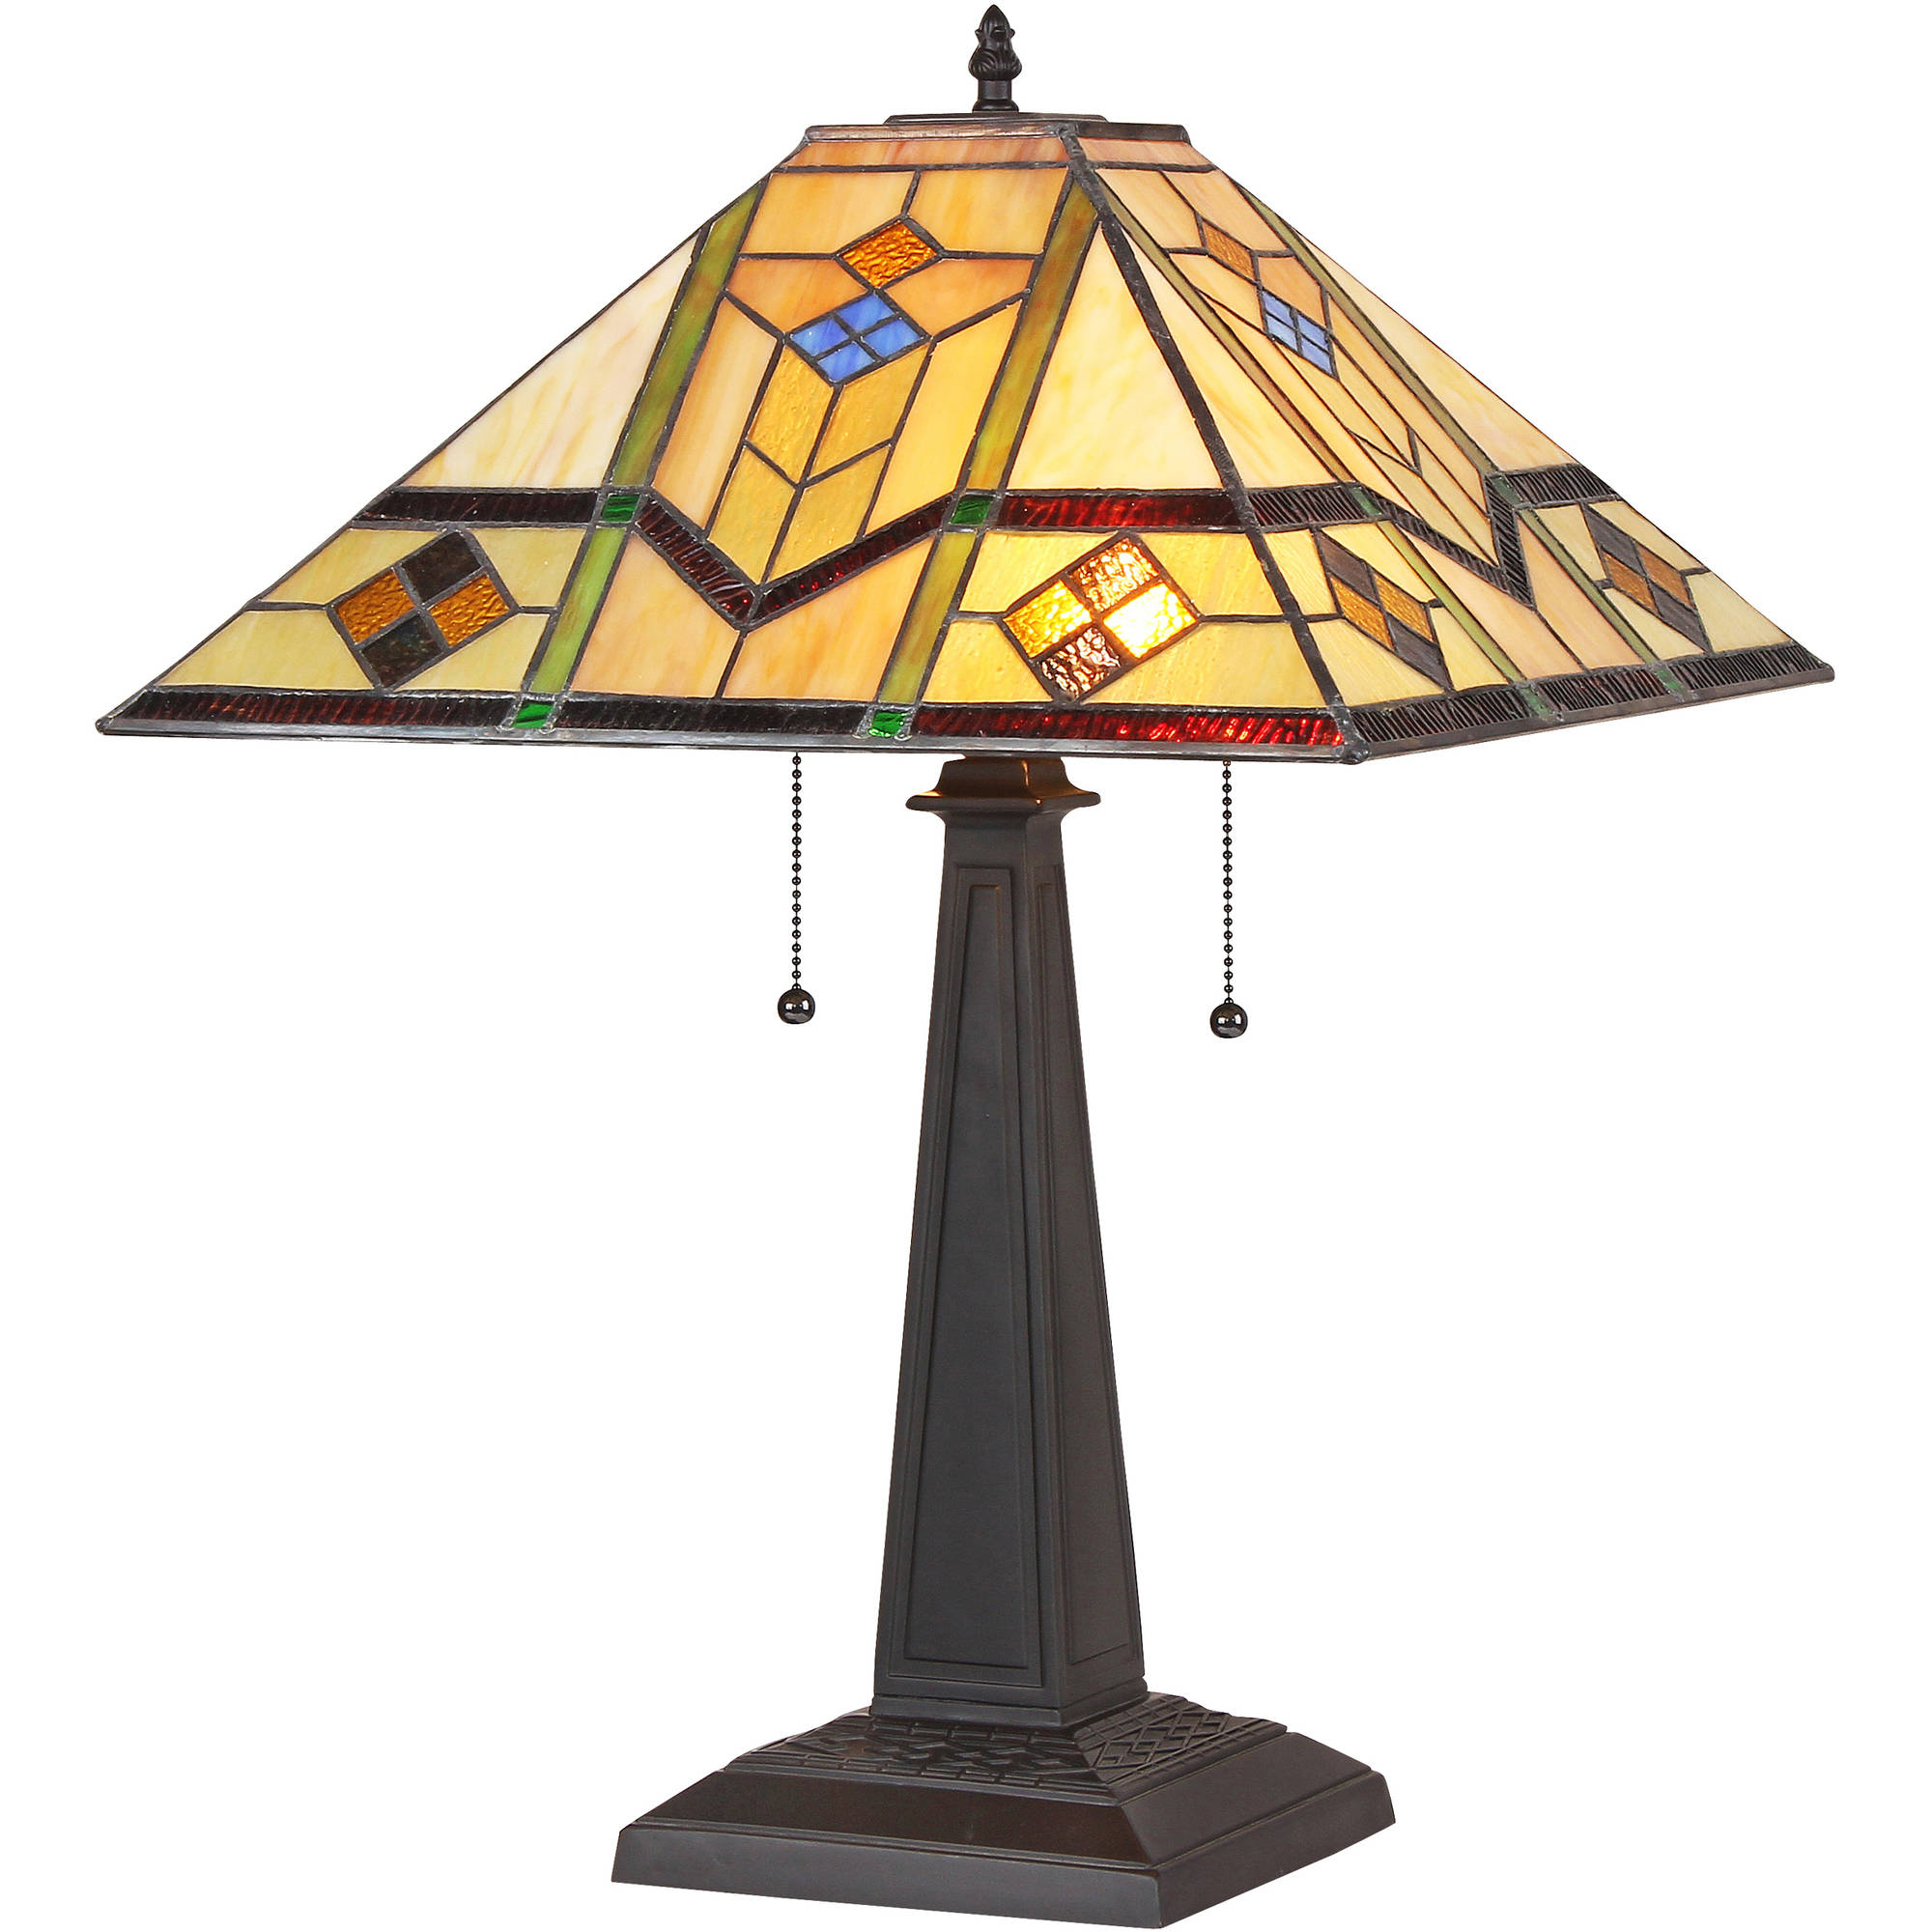 "Chloe Lighting Oliver Tiffany-Style 2-Light Mission Table Lamp with 16"" Shade"